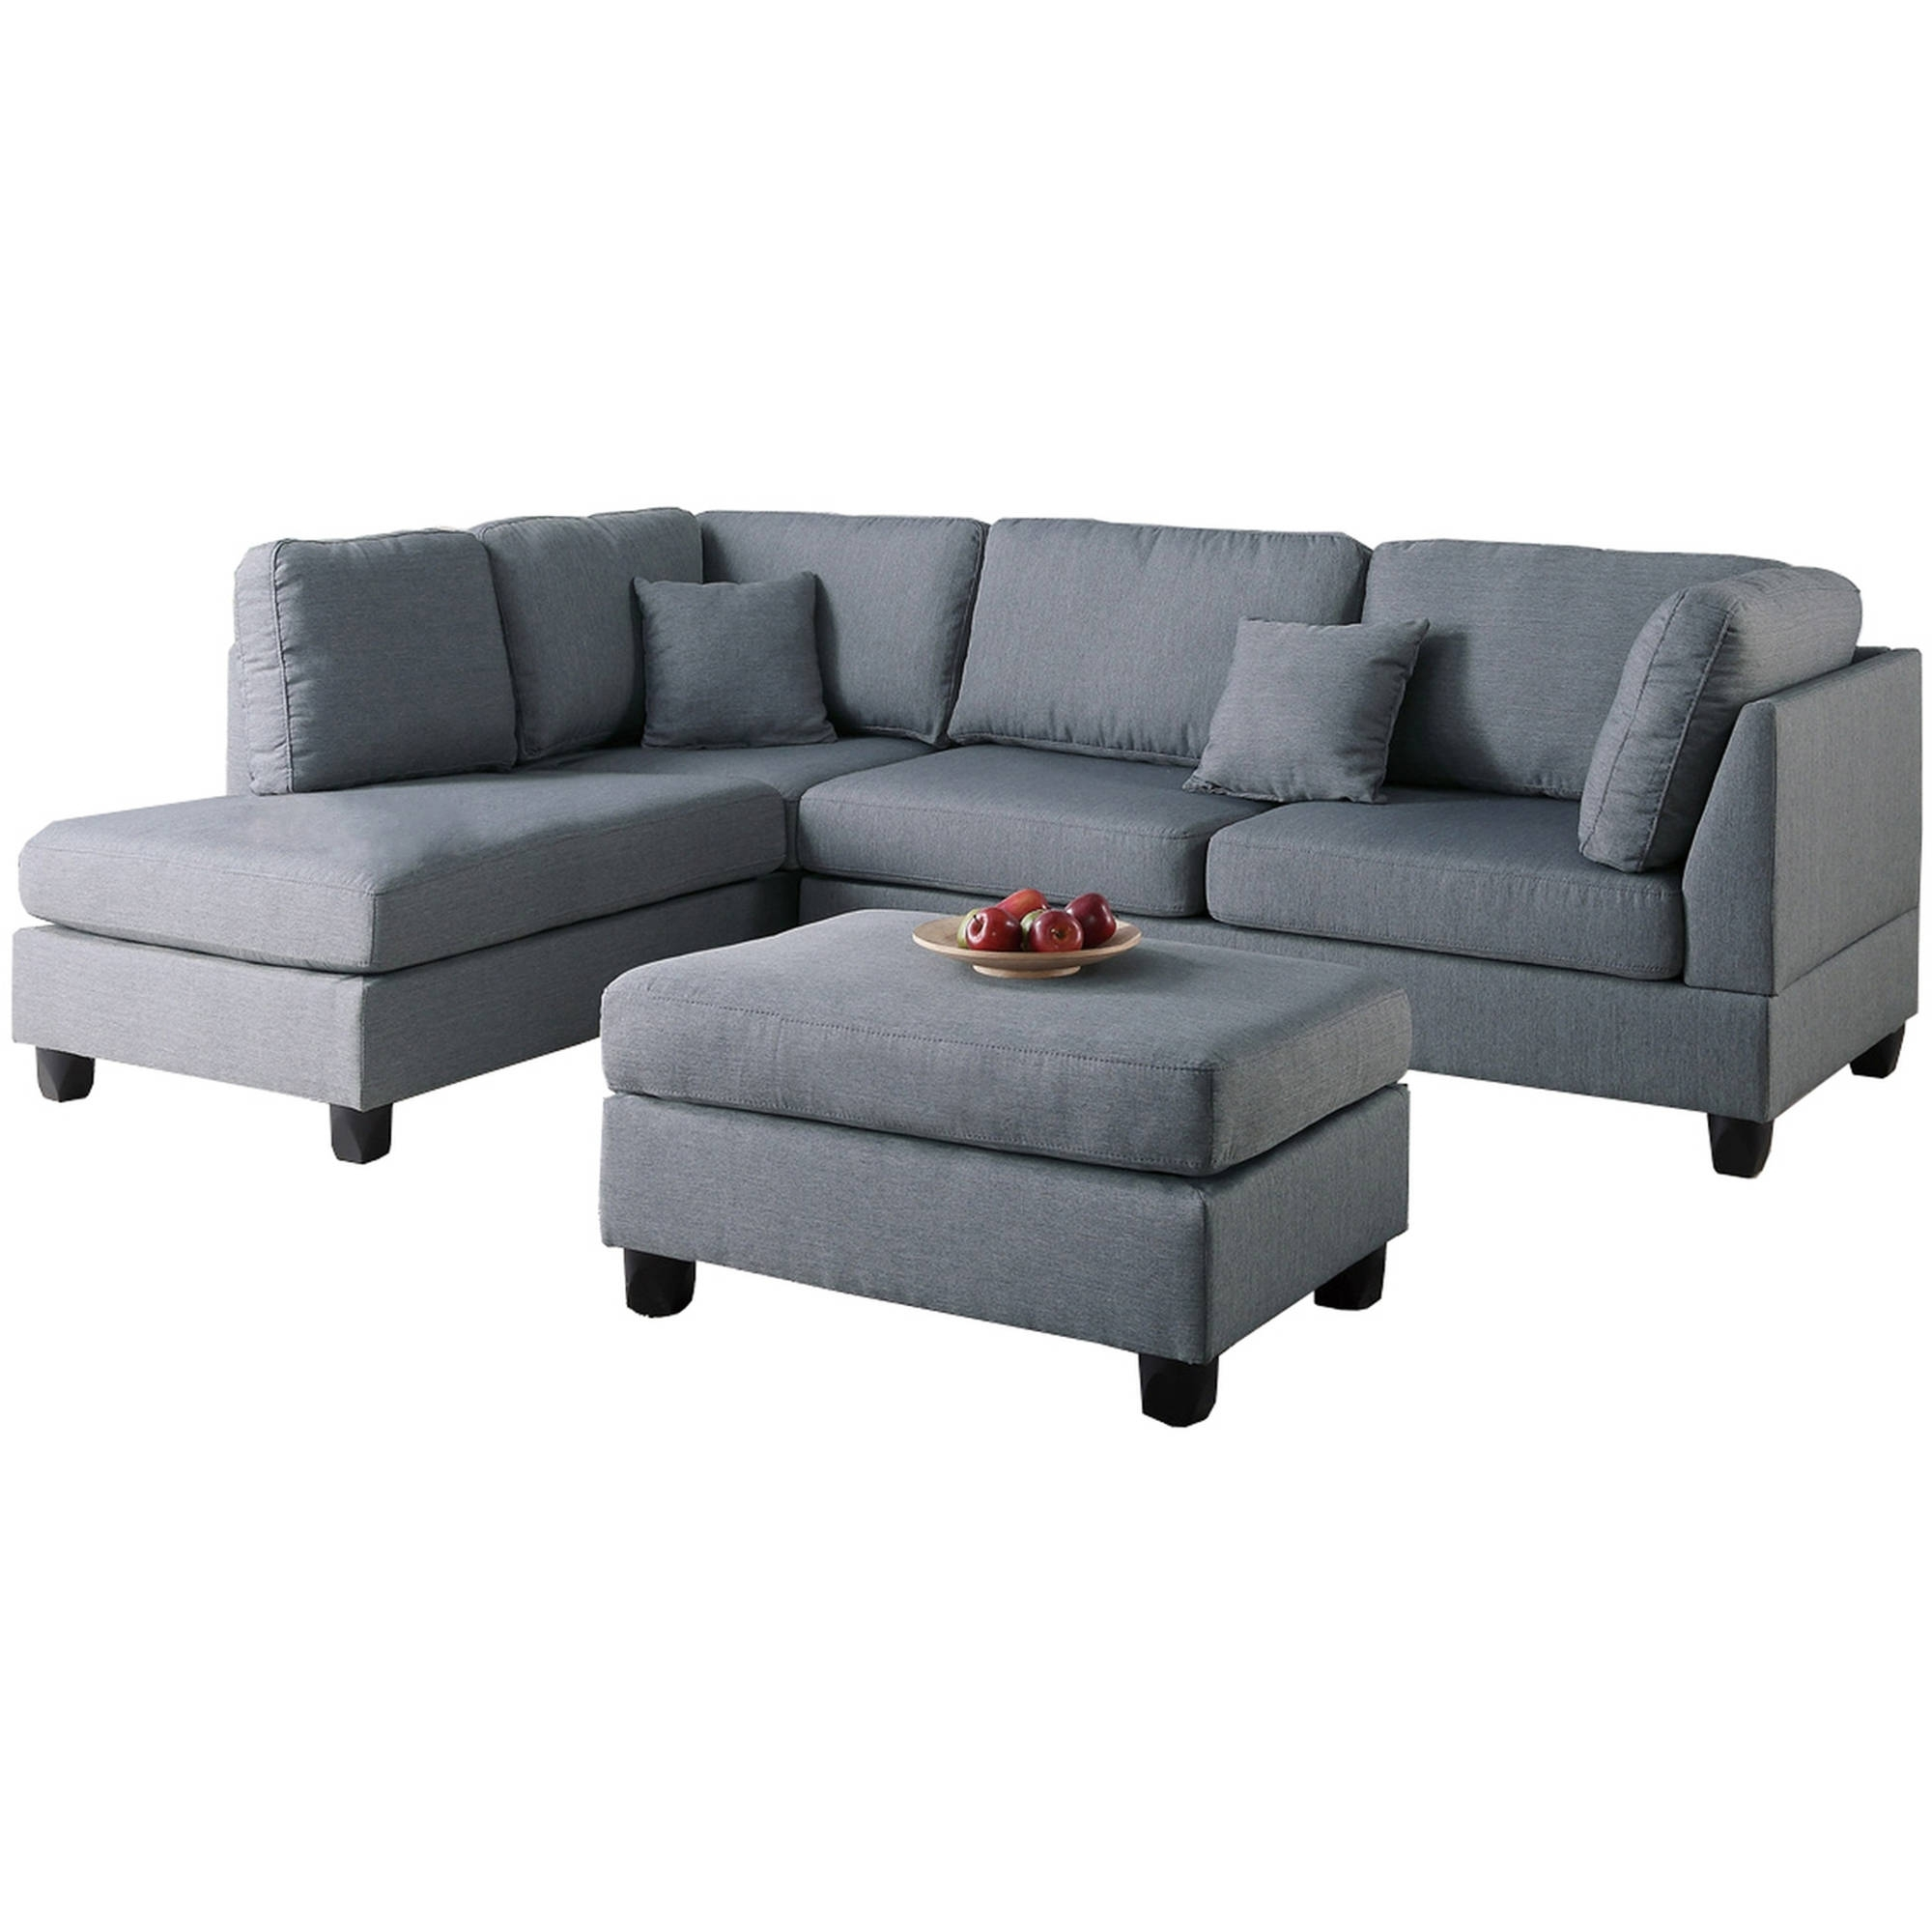 2017 Sofa Chairs For Living Room Throughout Living Room Furniture (View 13 of 15)